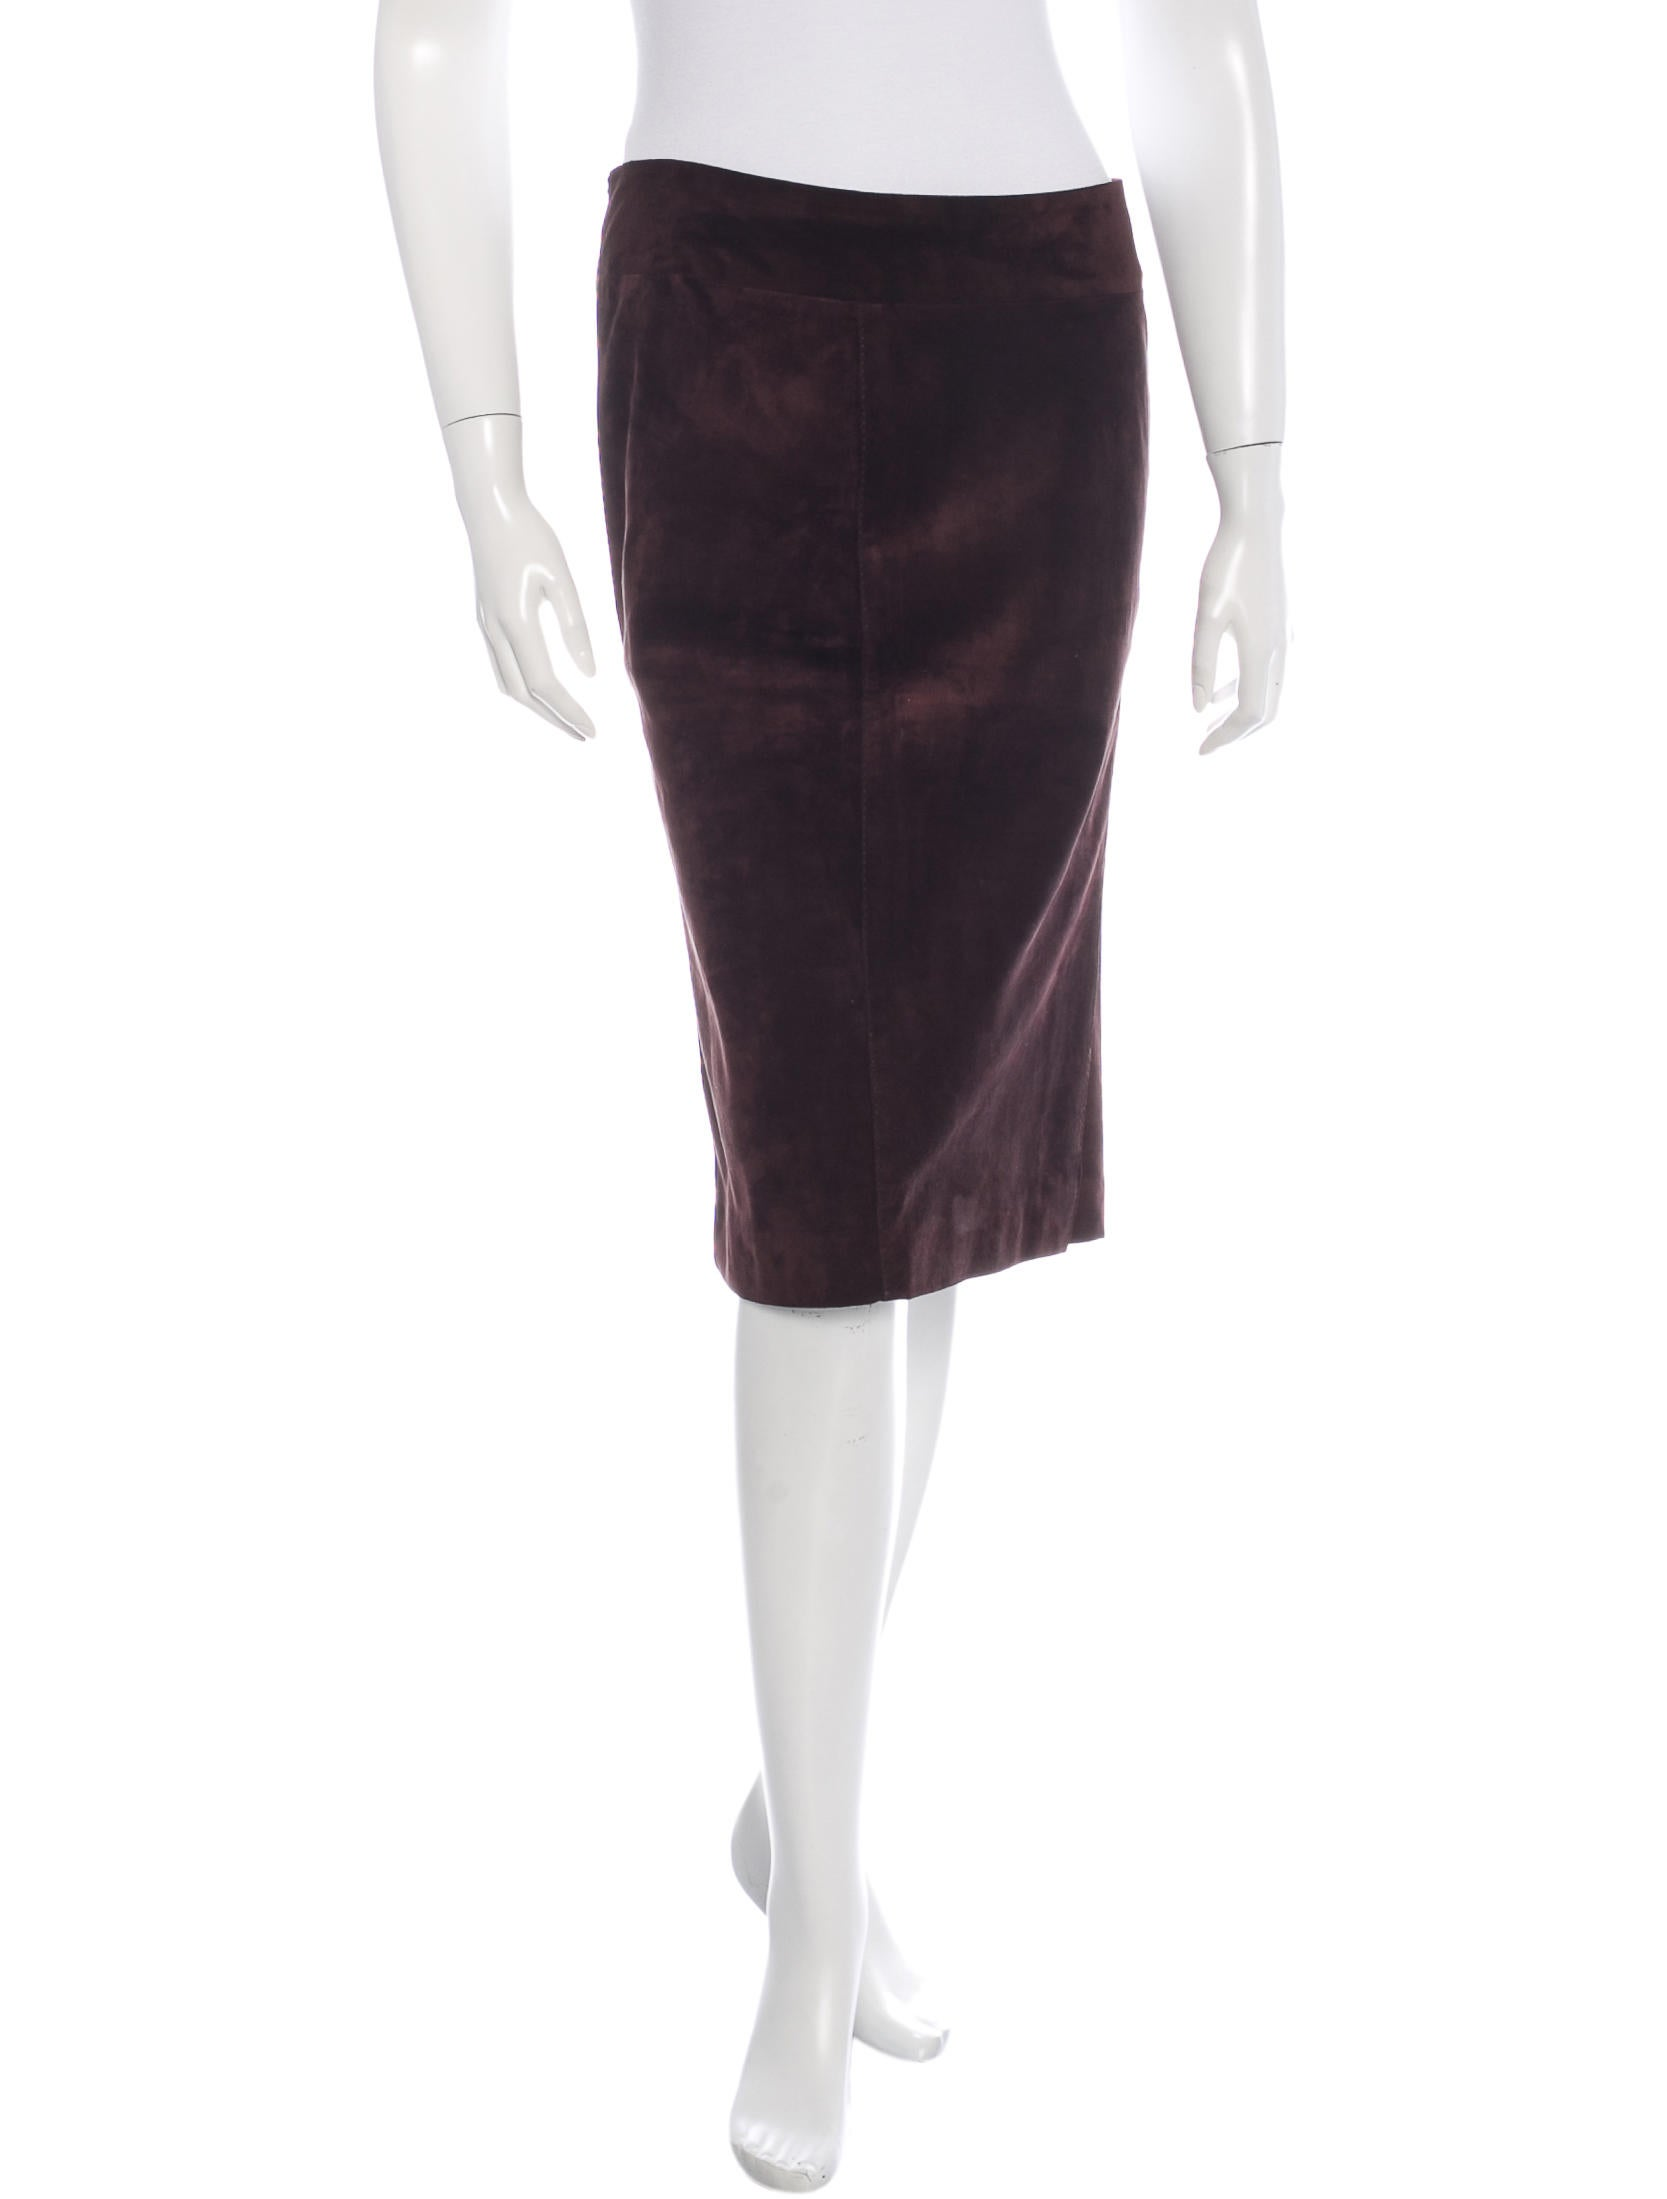 Gucci Suede Pencil Skirt - Clothing - GUC101482 | The RealReal